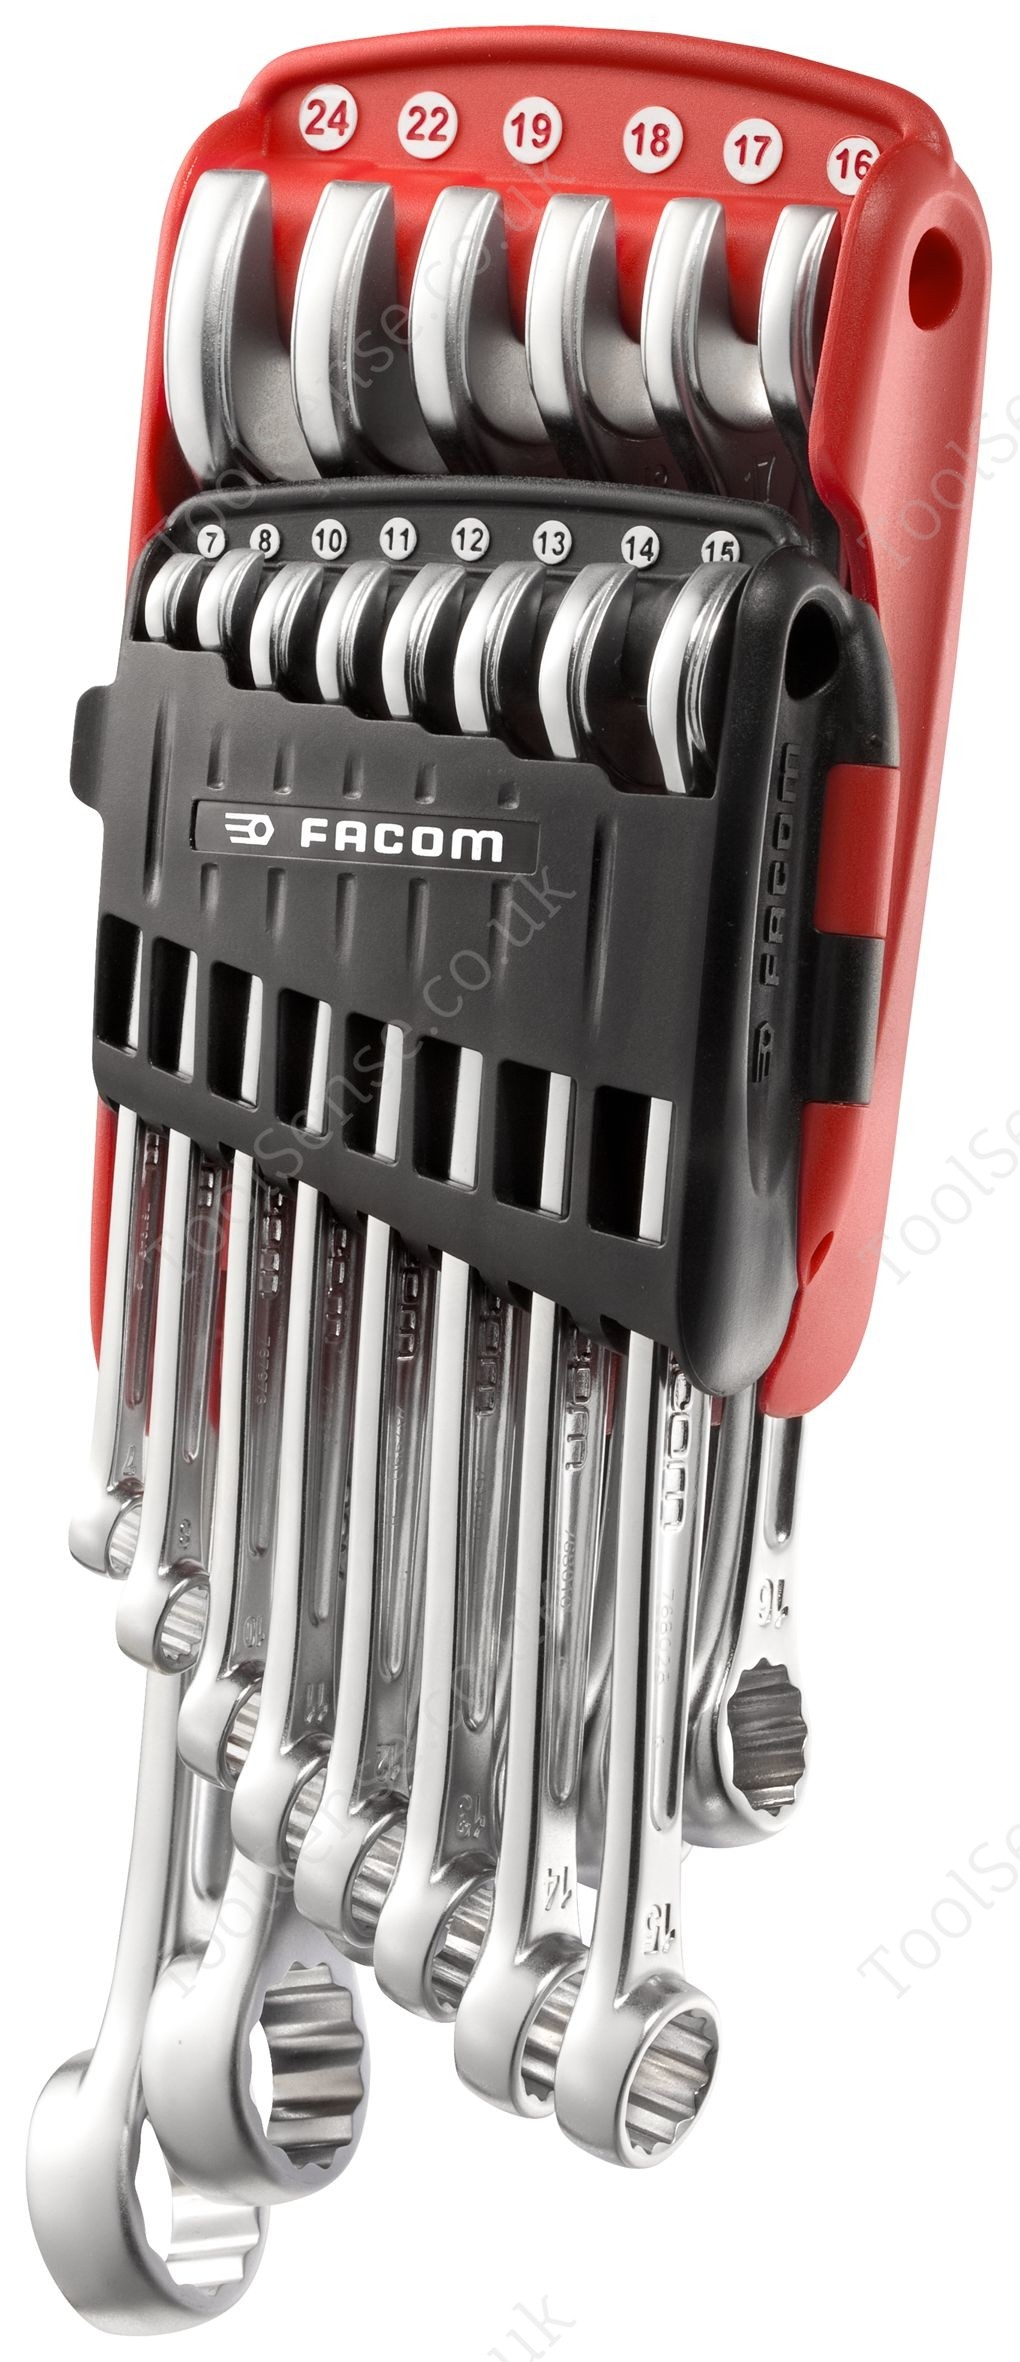 facom 440 jp14 440 metric offset combination wrench sets in portable case. Black Bedroom Furniture Sets. Home Design Ideas